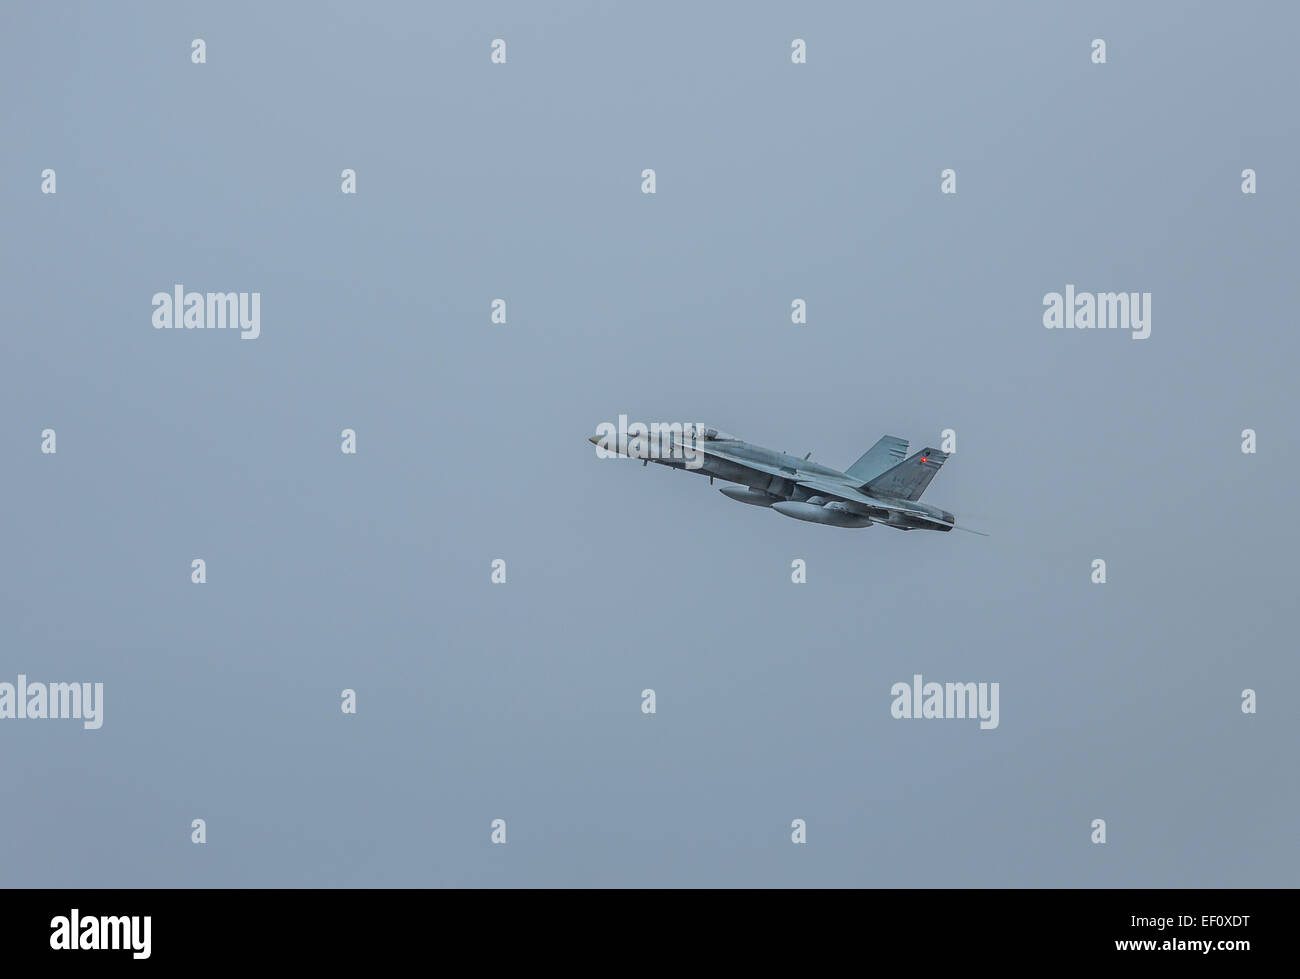 F18 Stock Photos Images Alamy Jet Engine Diagram A Canadian Armed Forces Aircraft In Flight Image